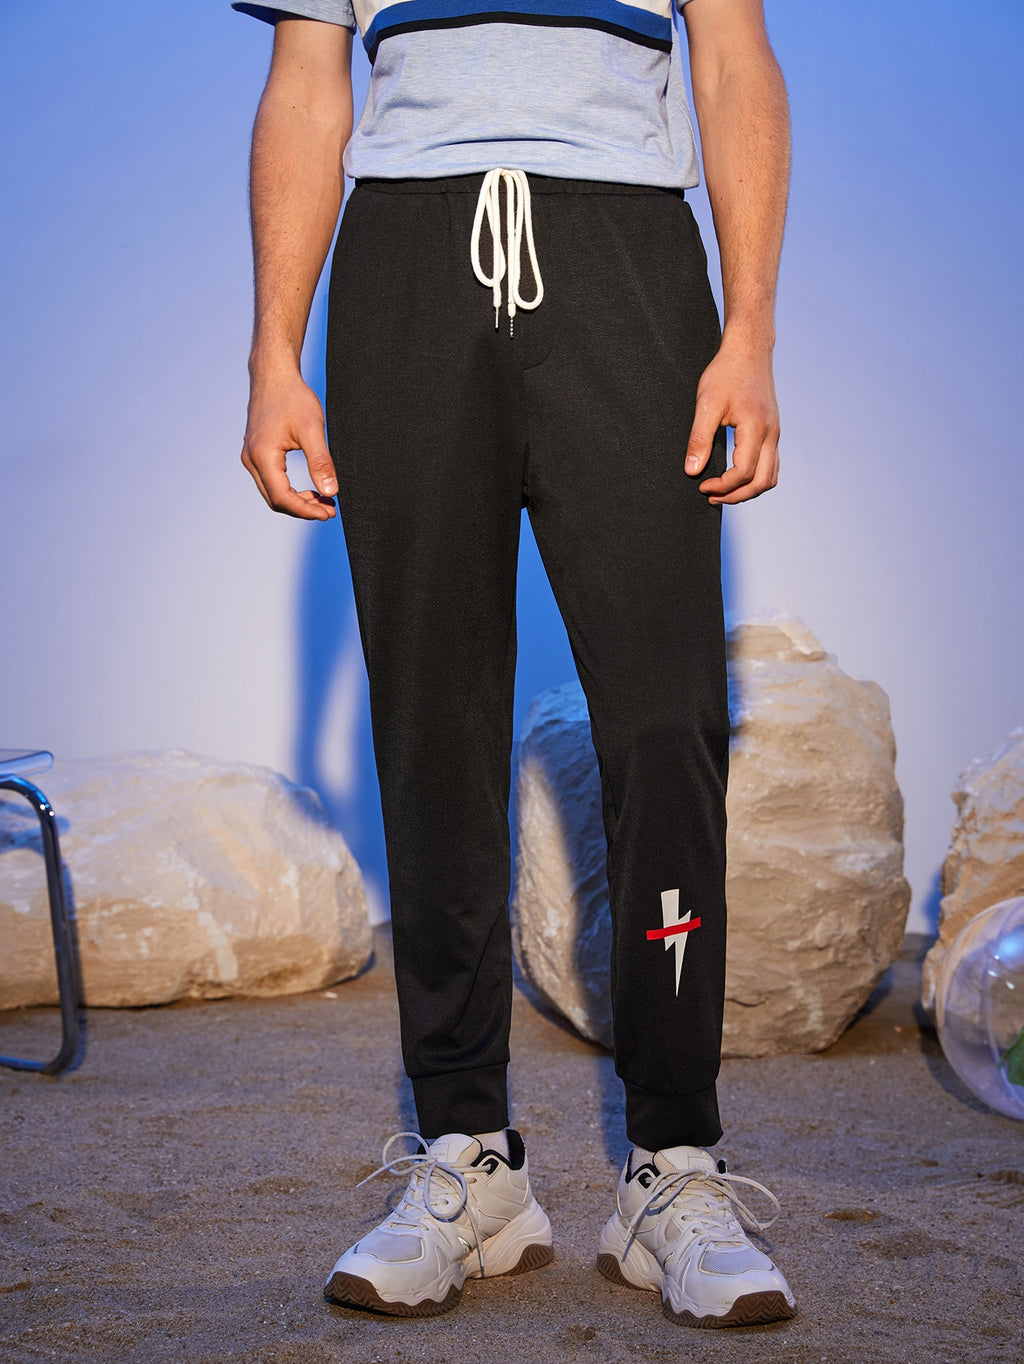 Lighting Sweatpants - This Is For Him